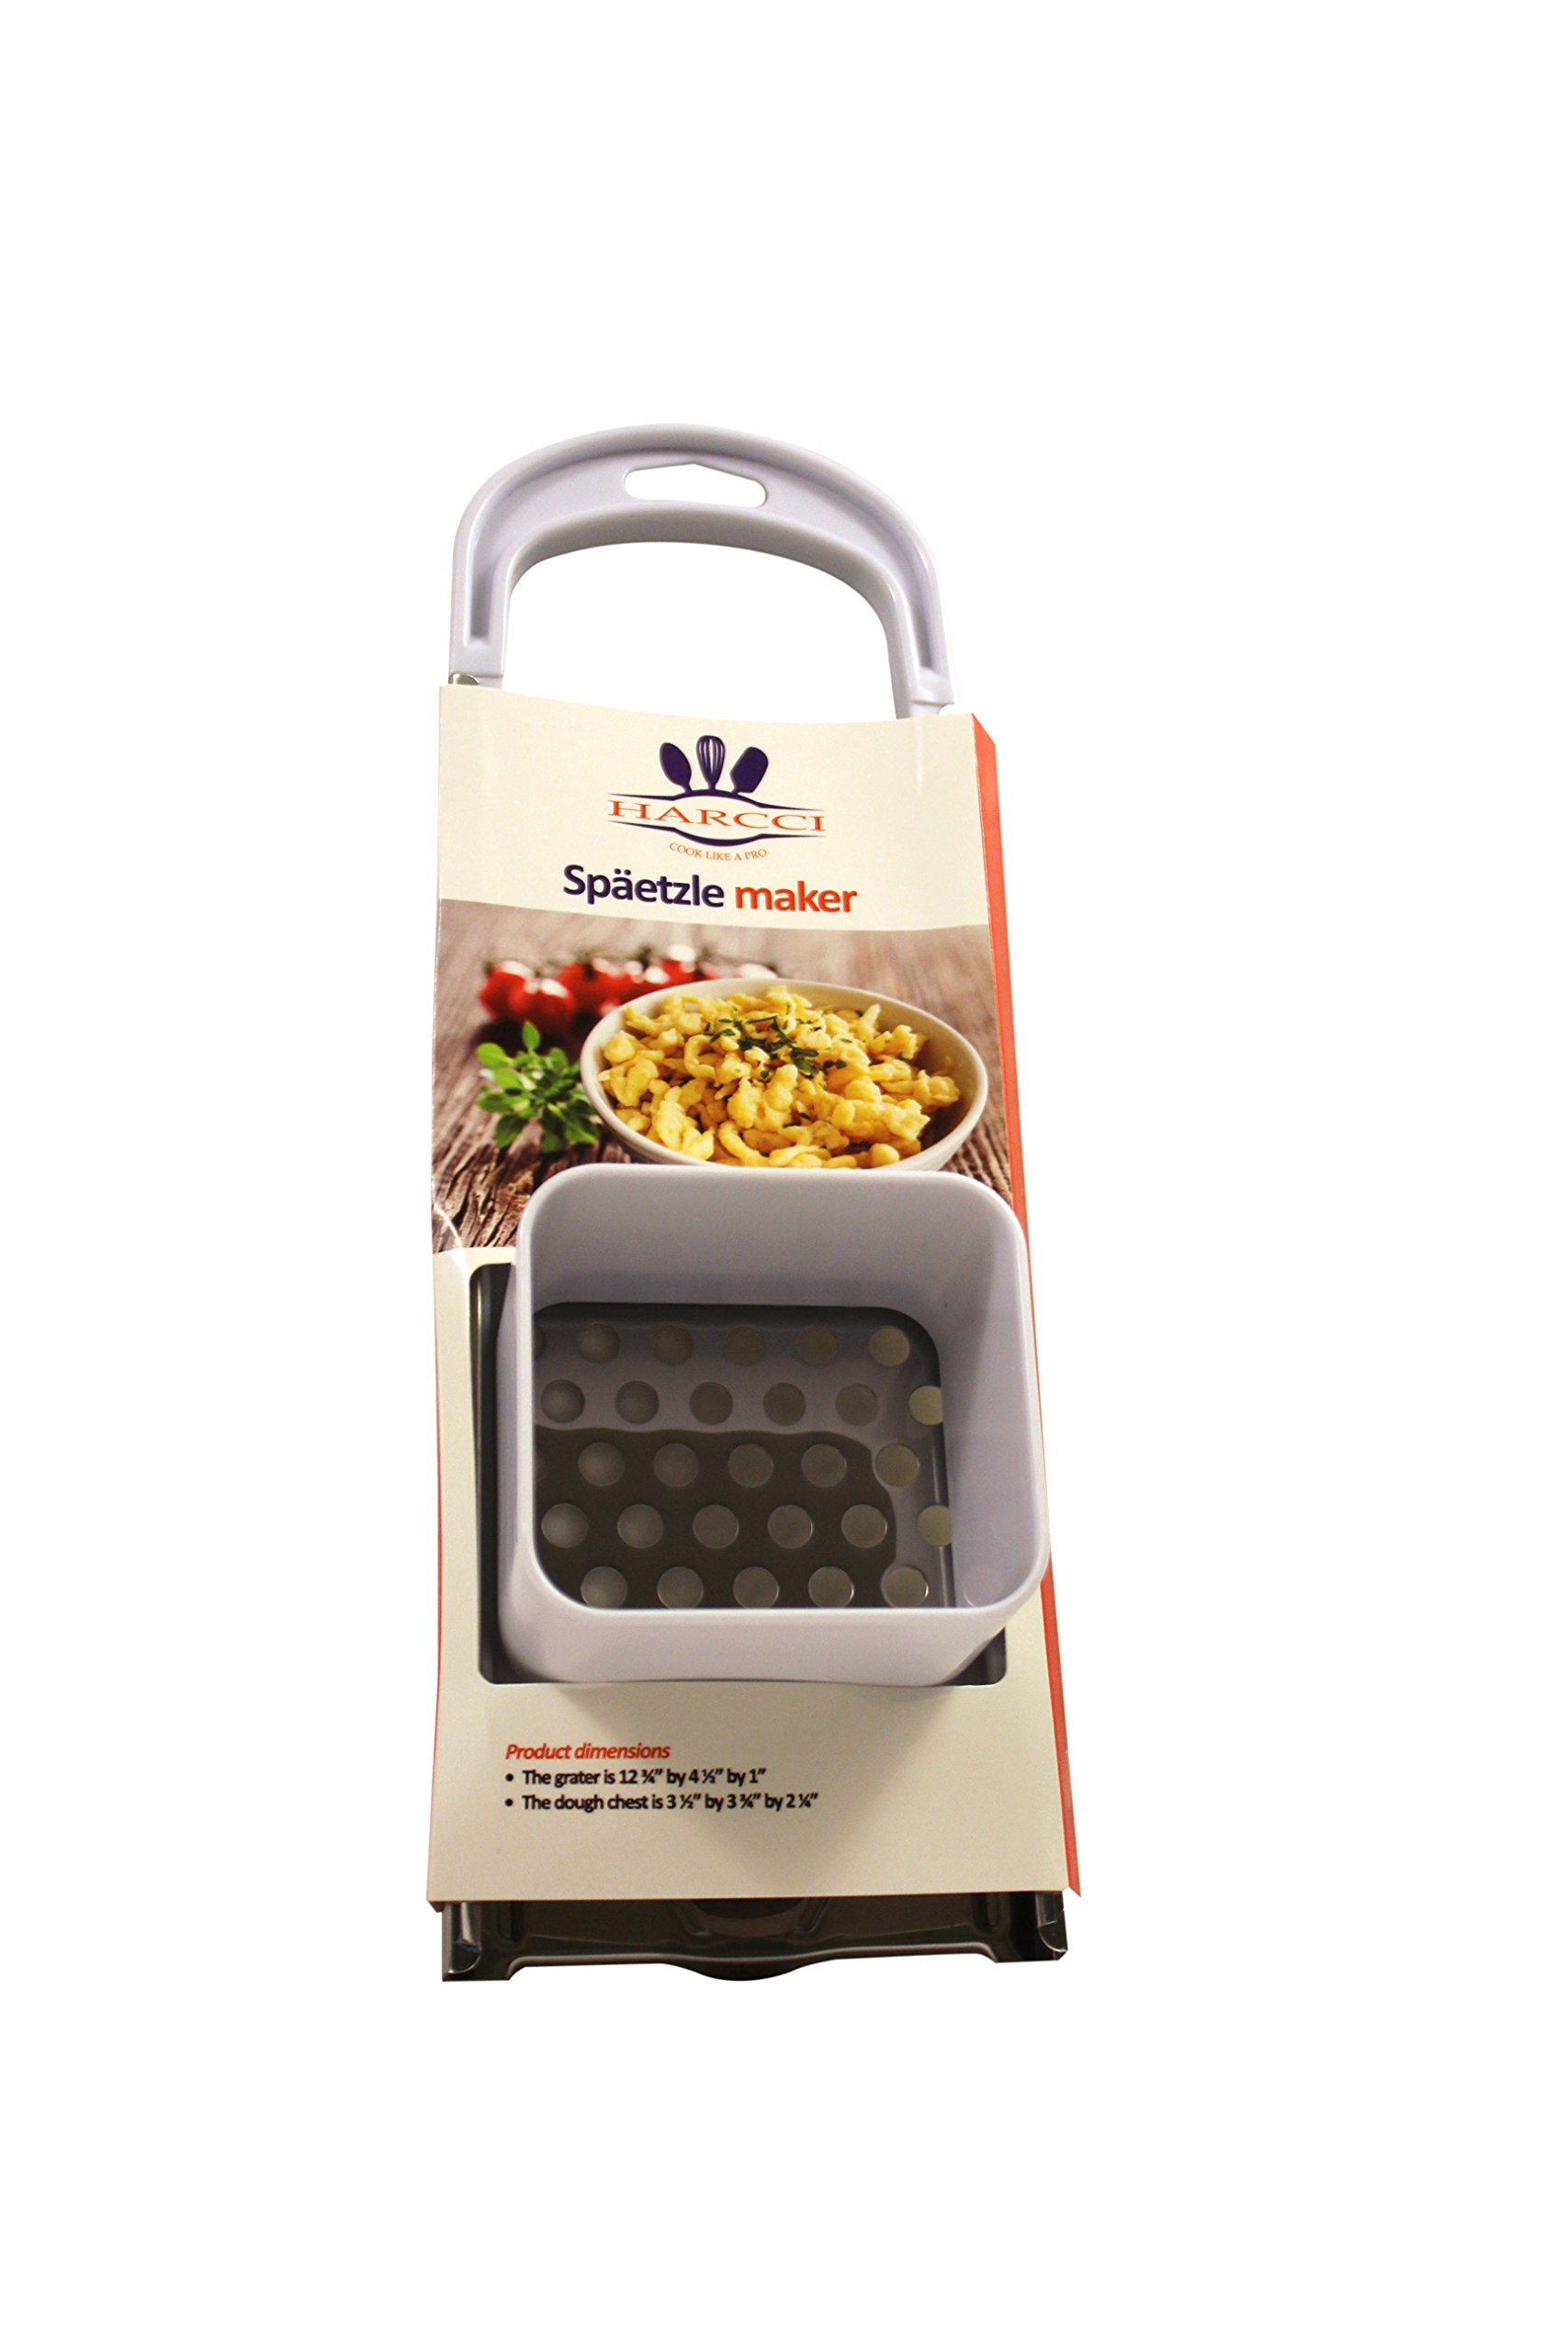 Spaetzle Maker By HARCCI : Homemade German Noodle Dumpling Making Tool With Safety Pusher And A Comfortable Handle – Stainless Steel And Food Grade Plastic In 5 Fun Colors (white)